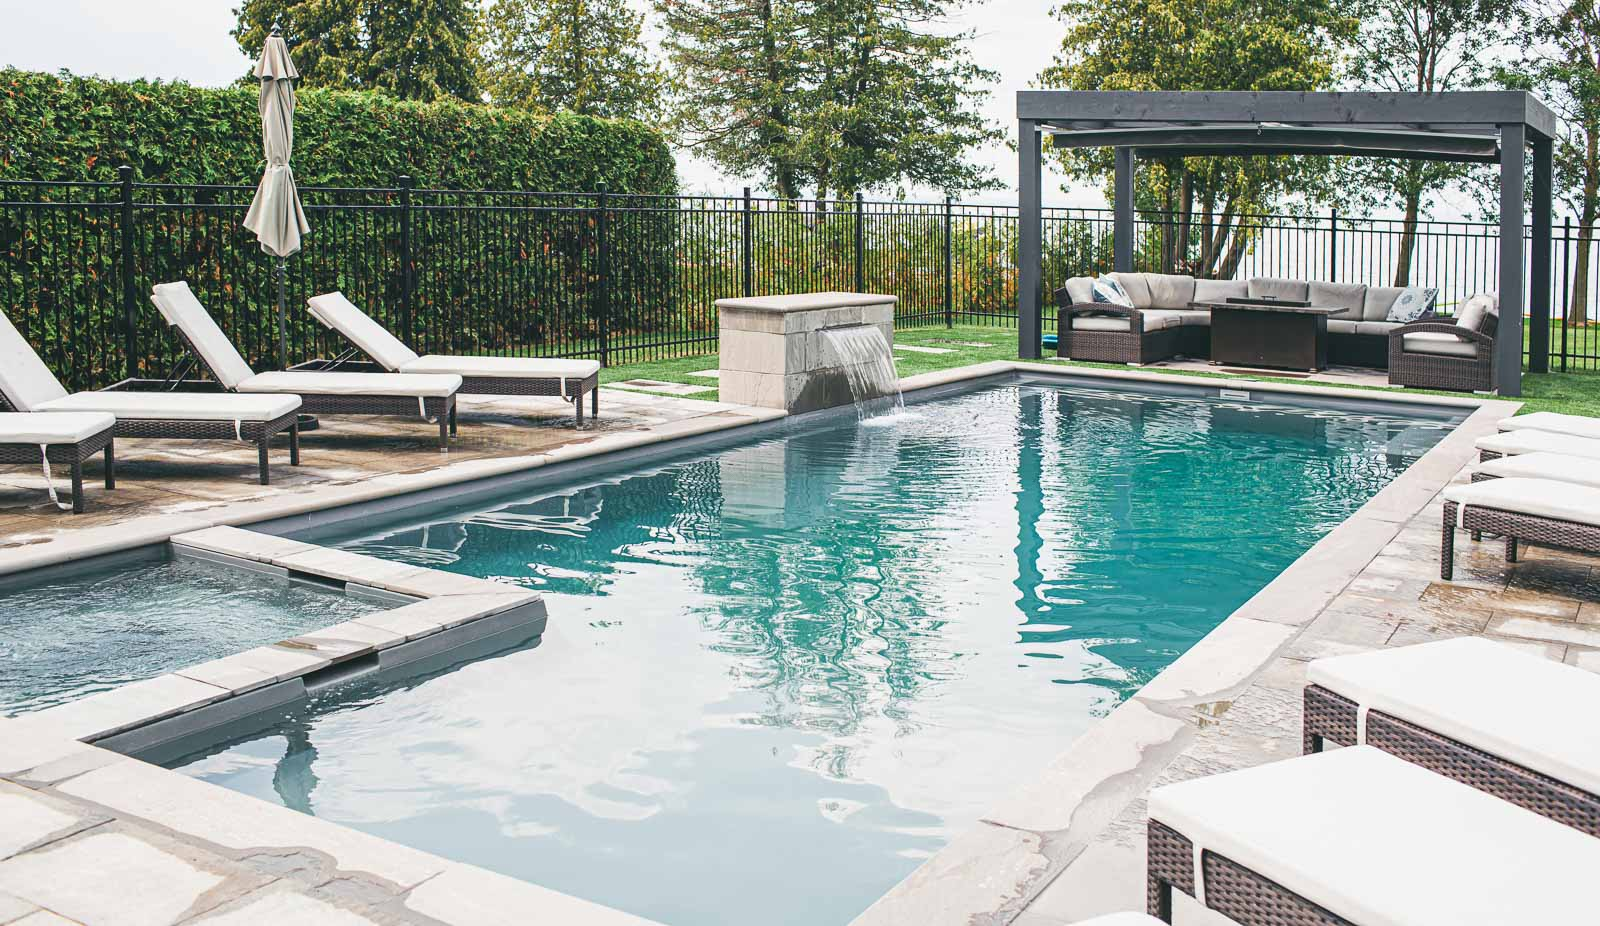 Leisure Pools Ultimate fiberglass swimming pool with built-in spa and tanning ledge